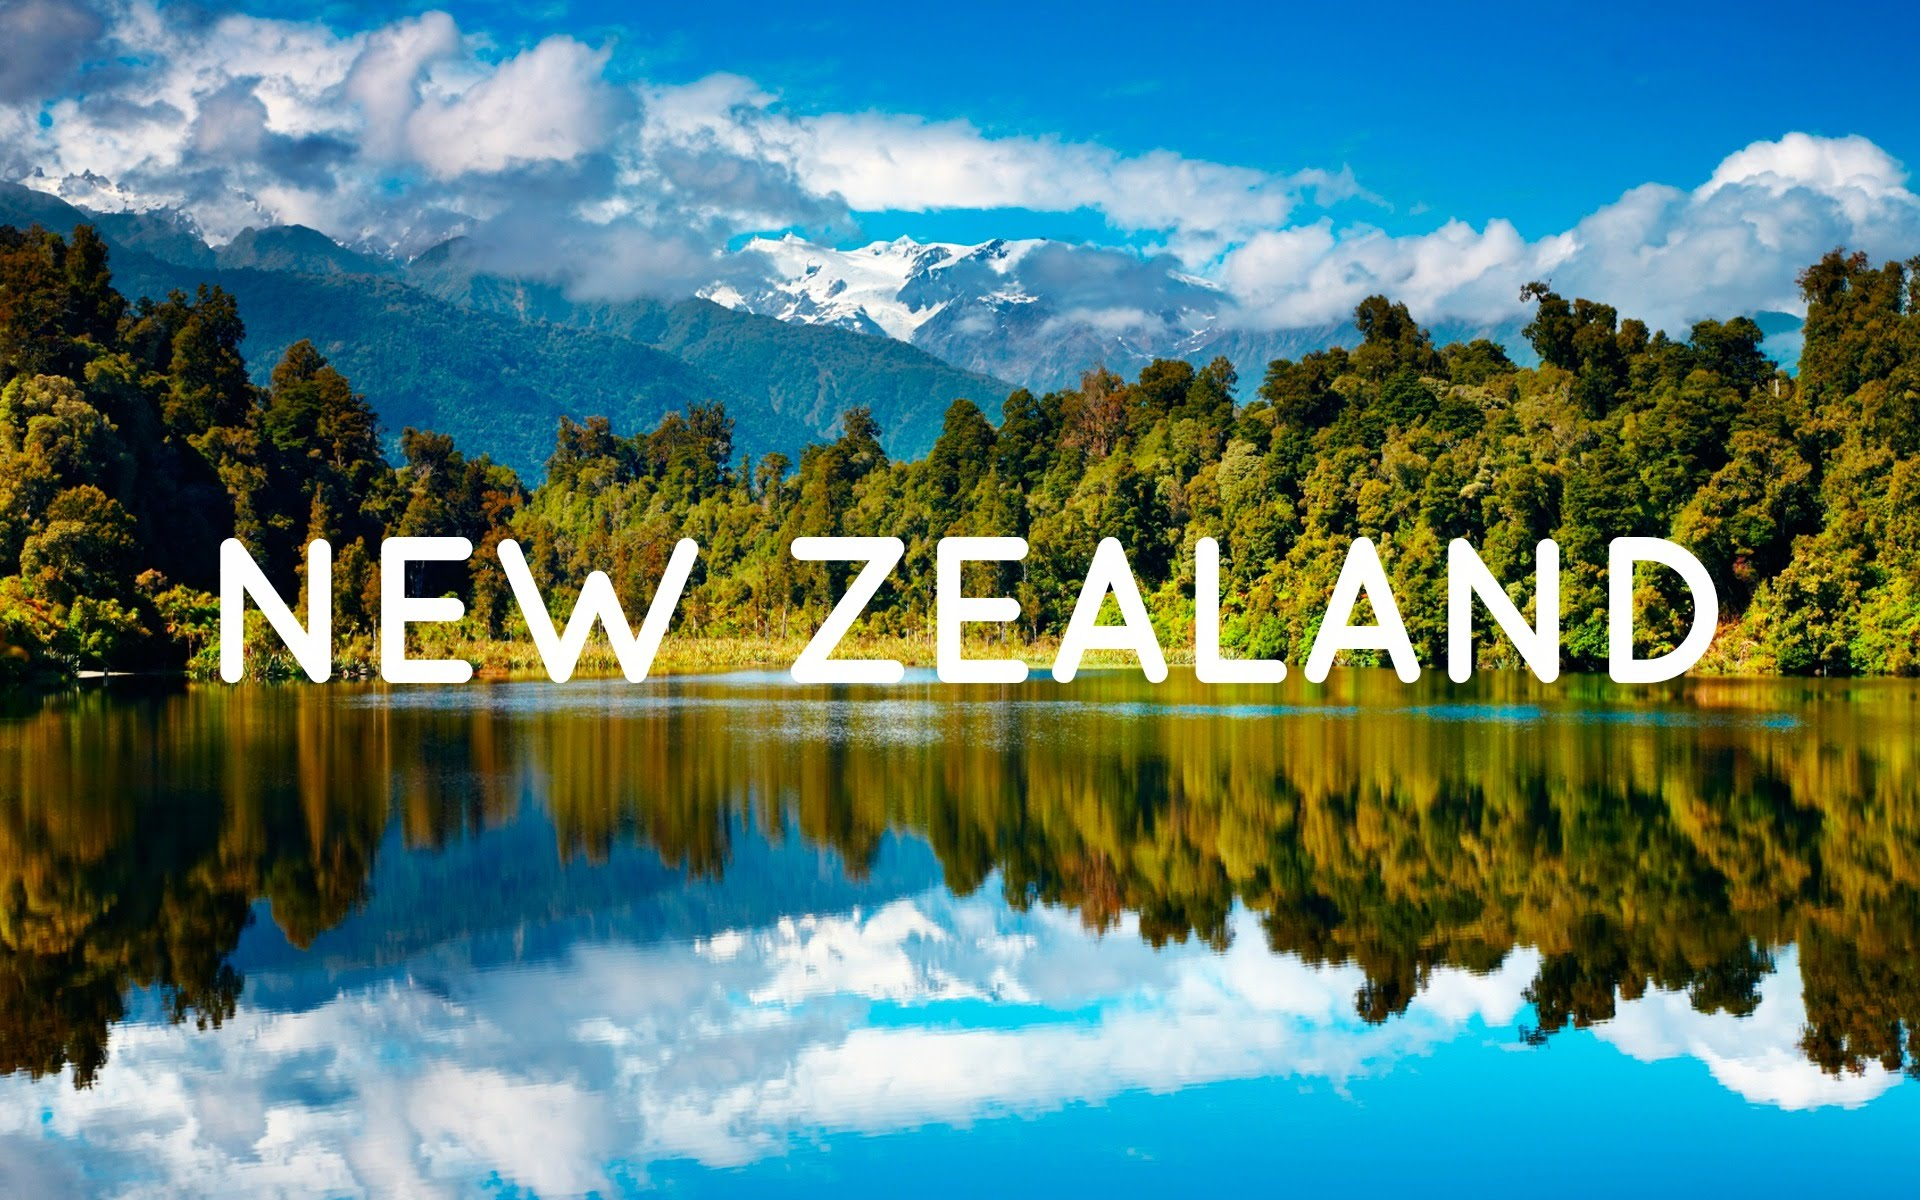 Beautiful Fall Location Wallpapers New Zealand Fall 2020 Yoga Simple And Sacred